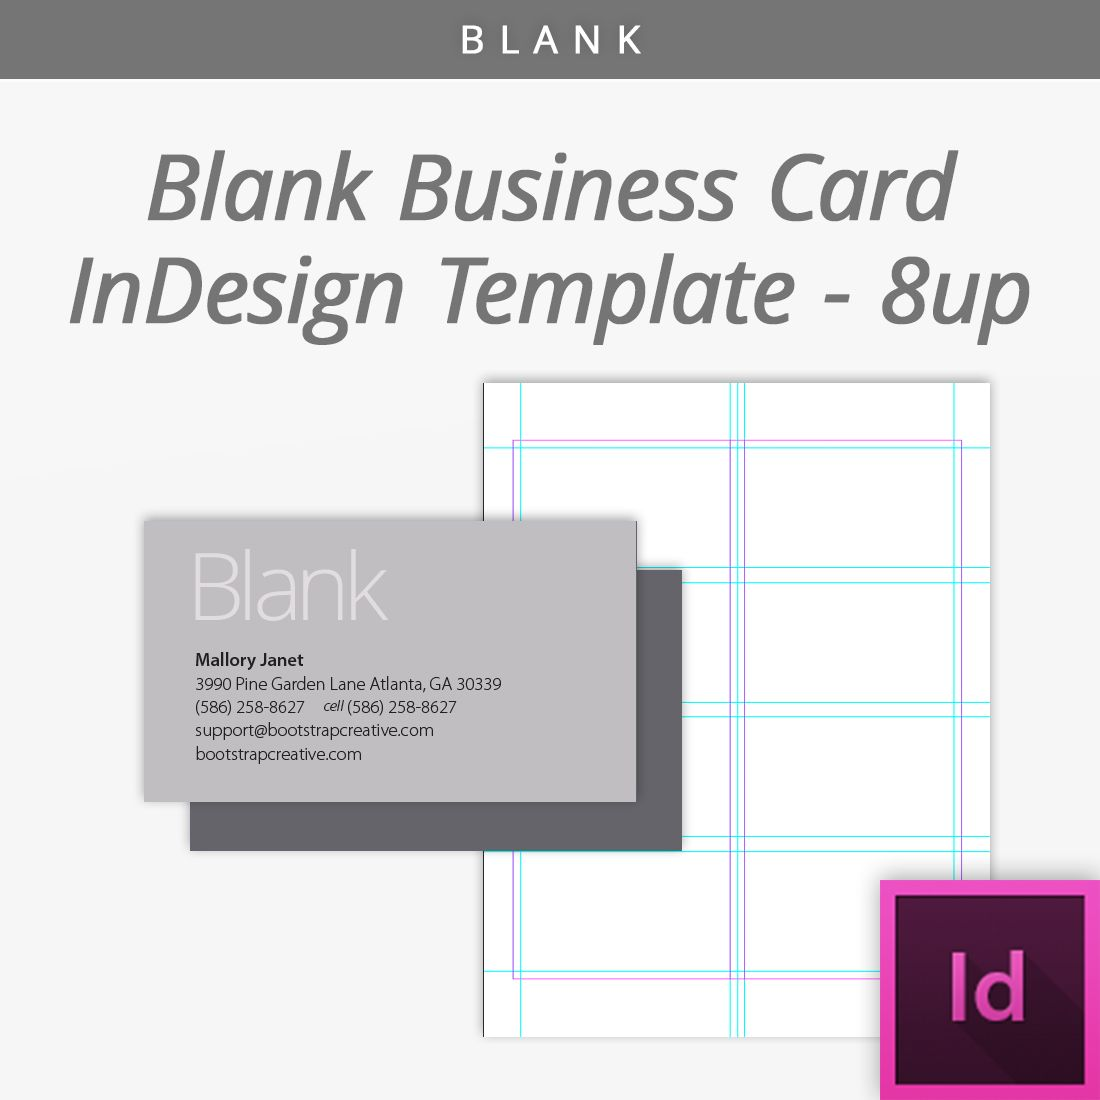 Blank InDesign Business Card Template Up Free Download - Blank business card template free